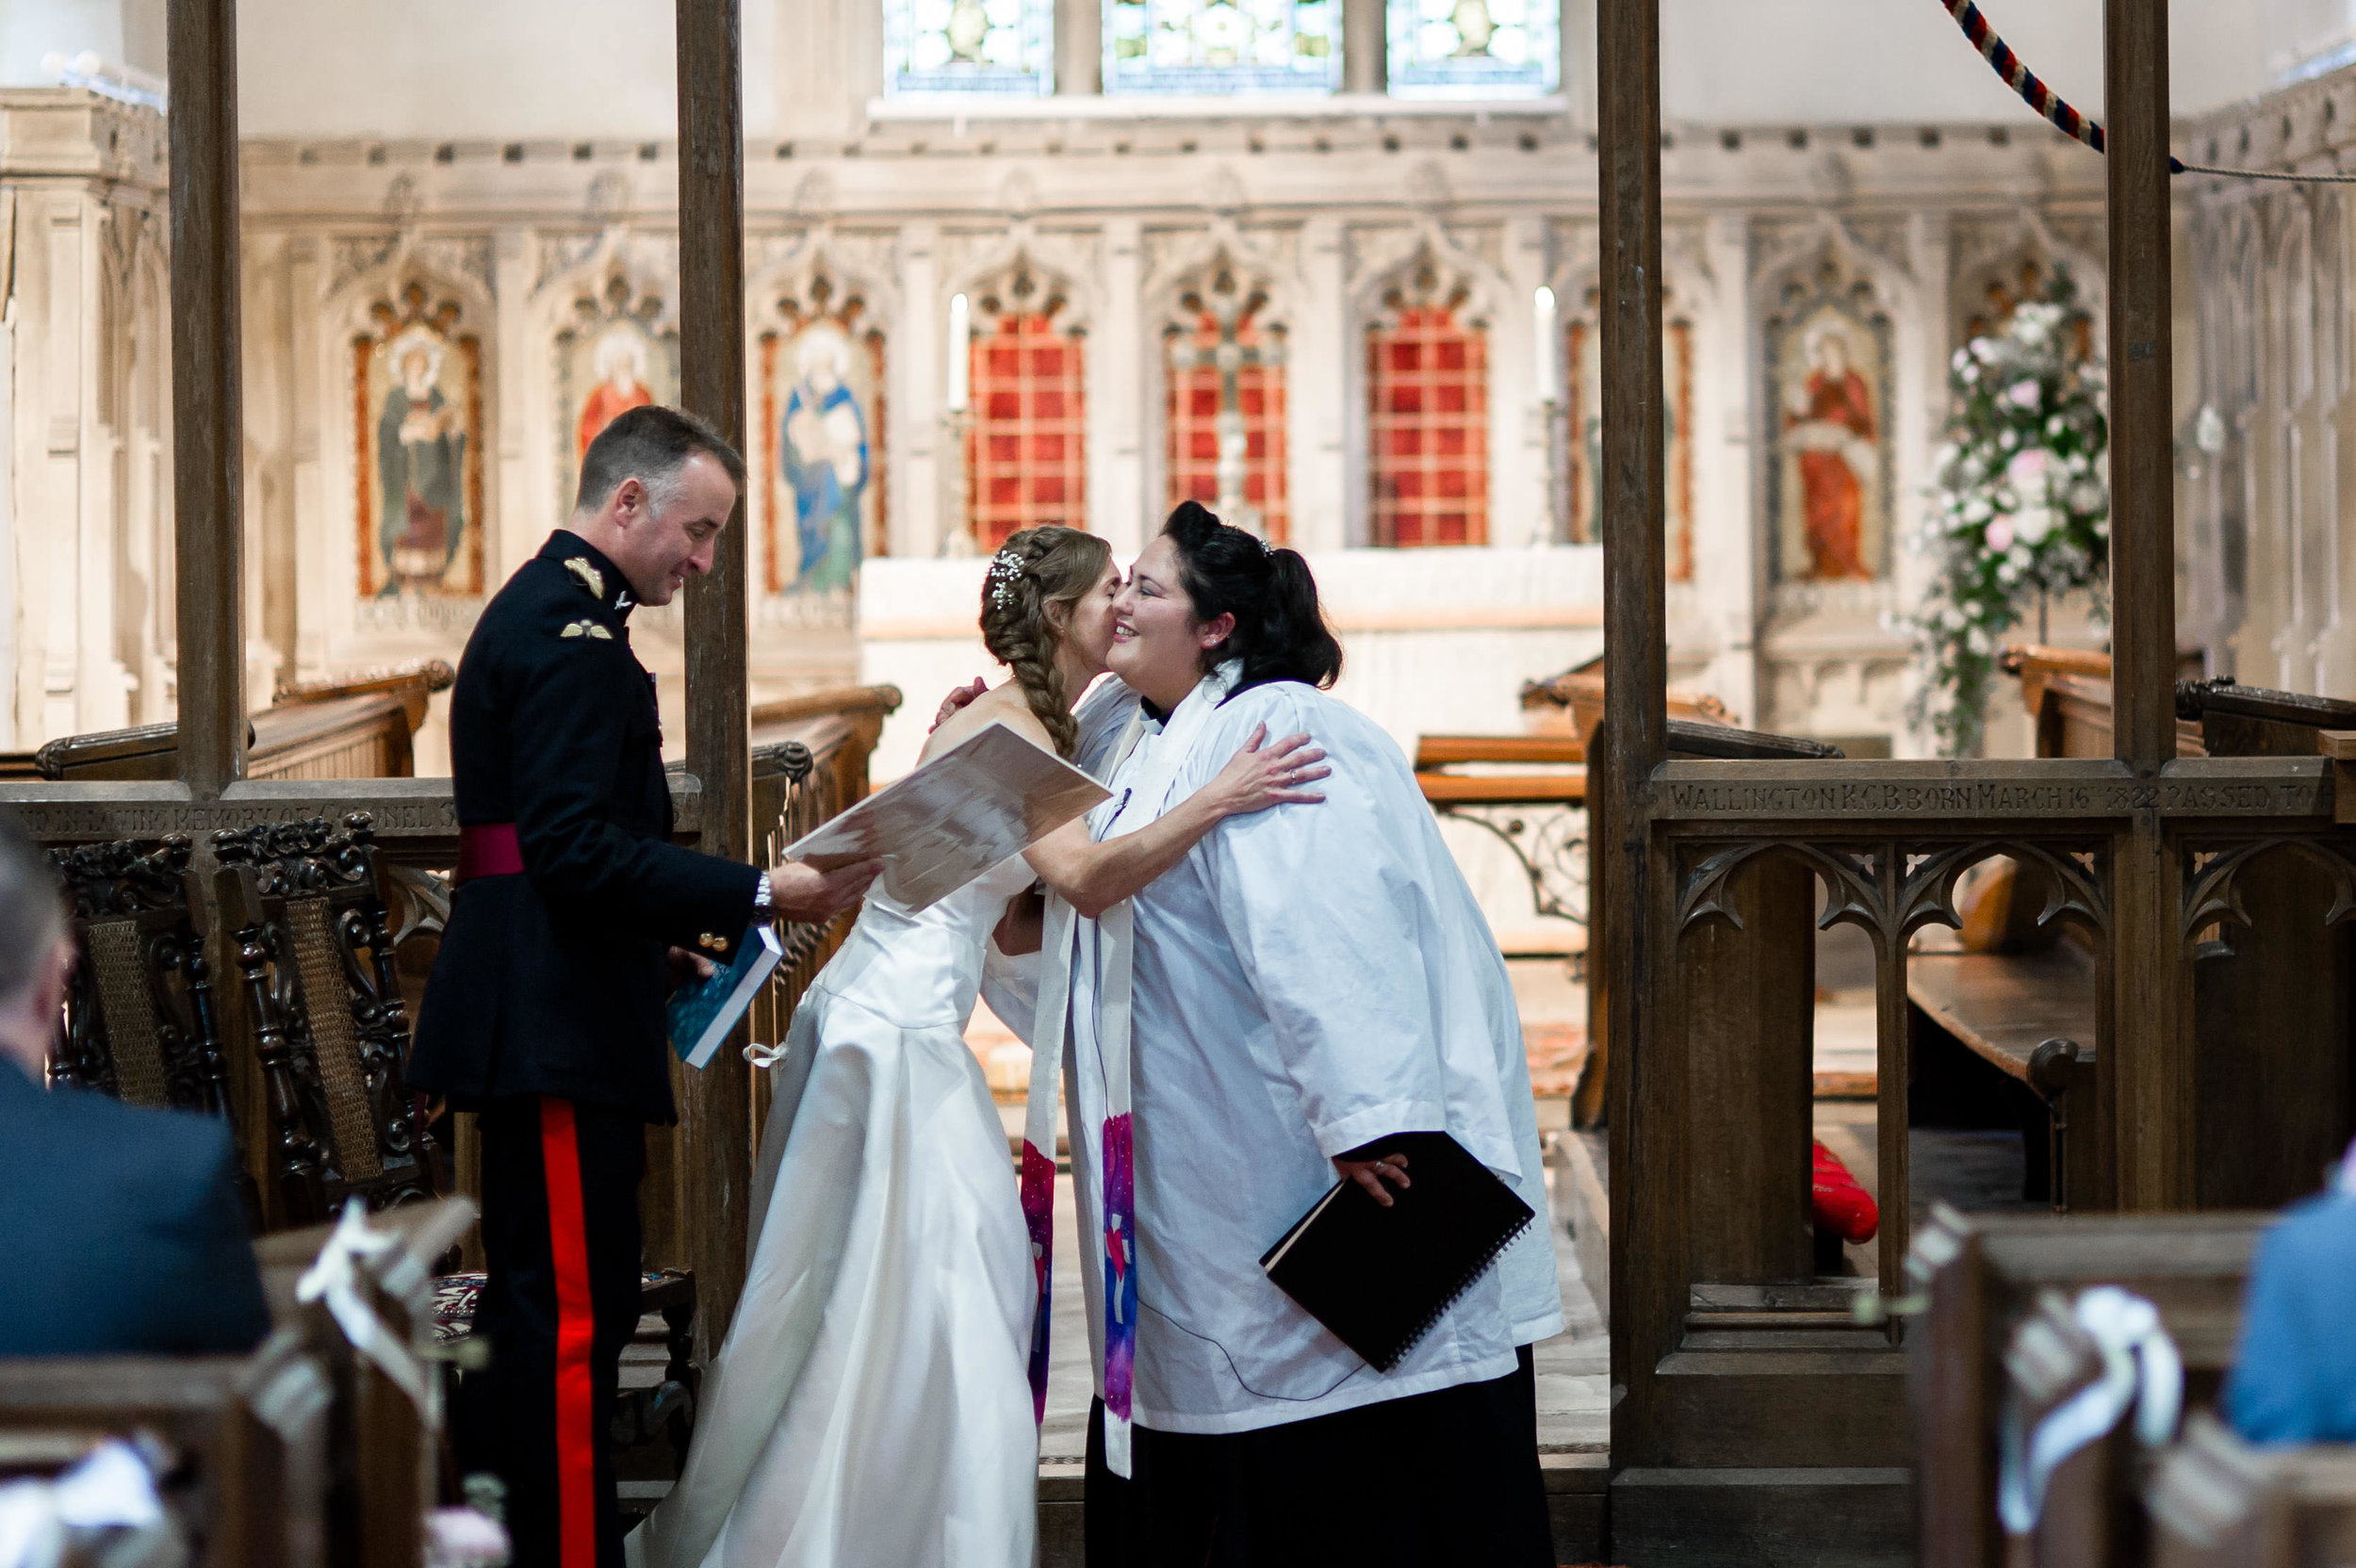 Salisbury wedding photography (82 of 250).jpg